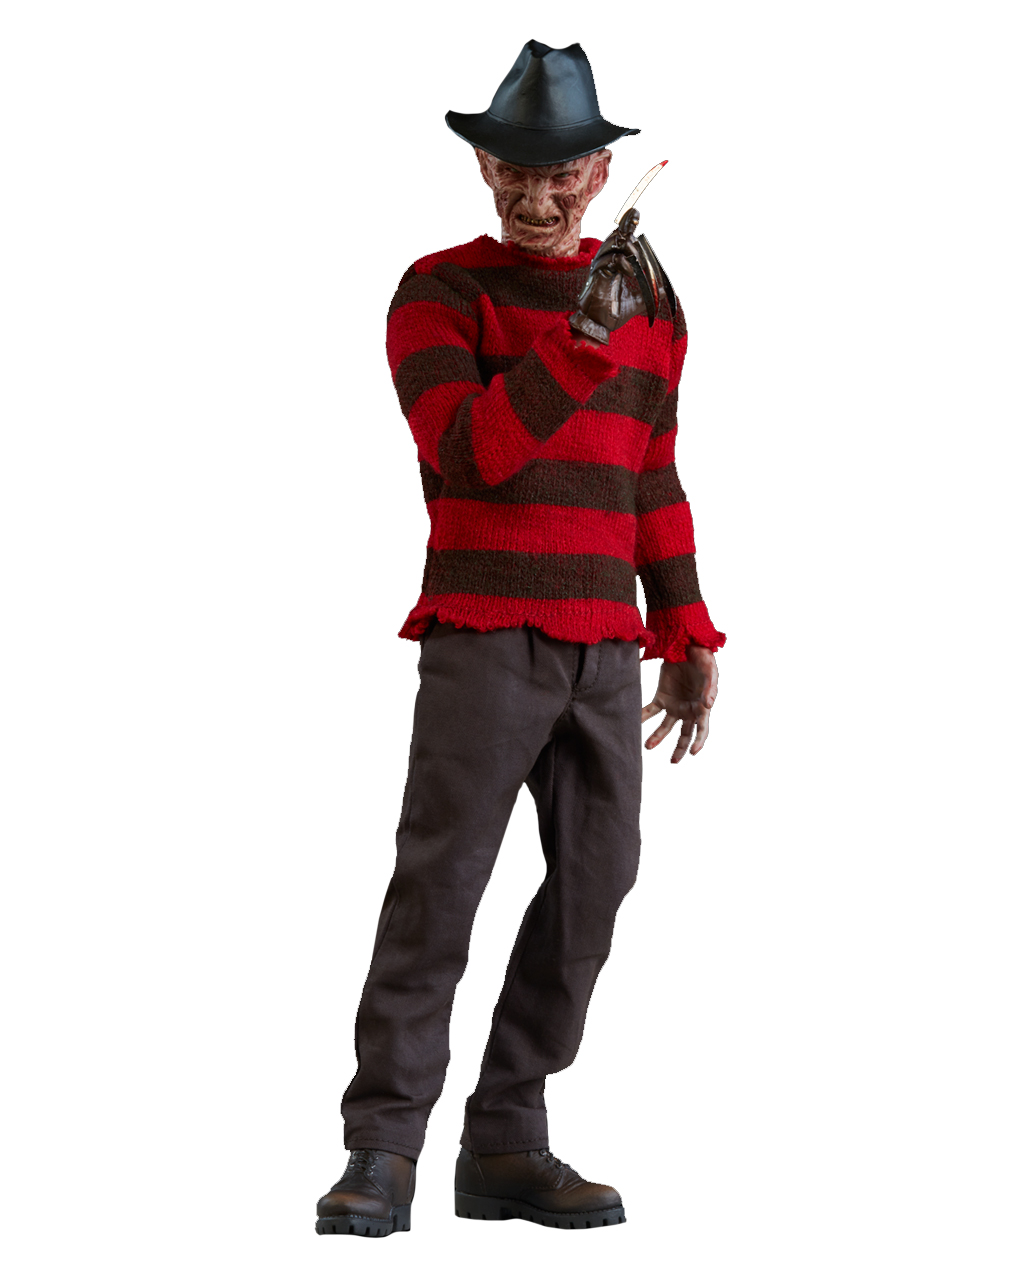 freddy krueger collectible figure 30cm to order | horror-shop